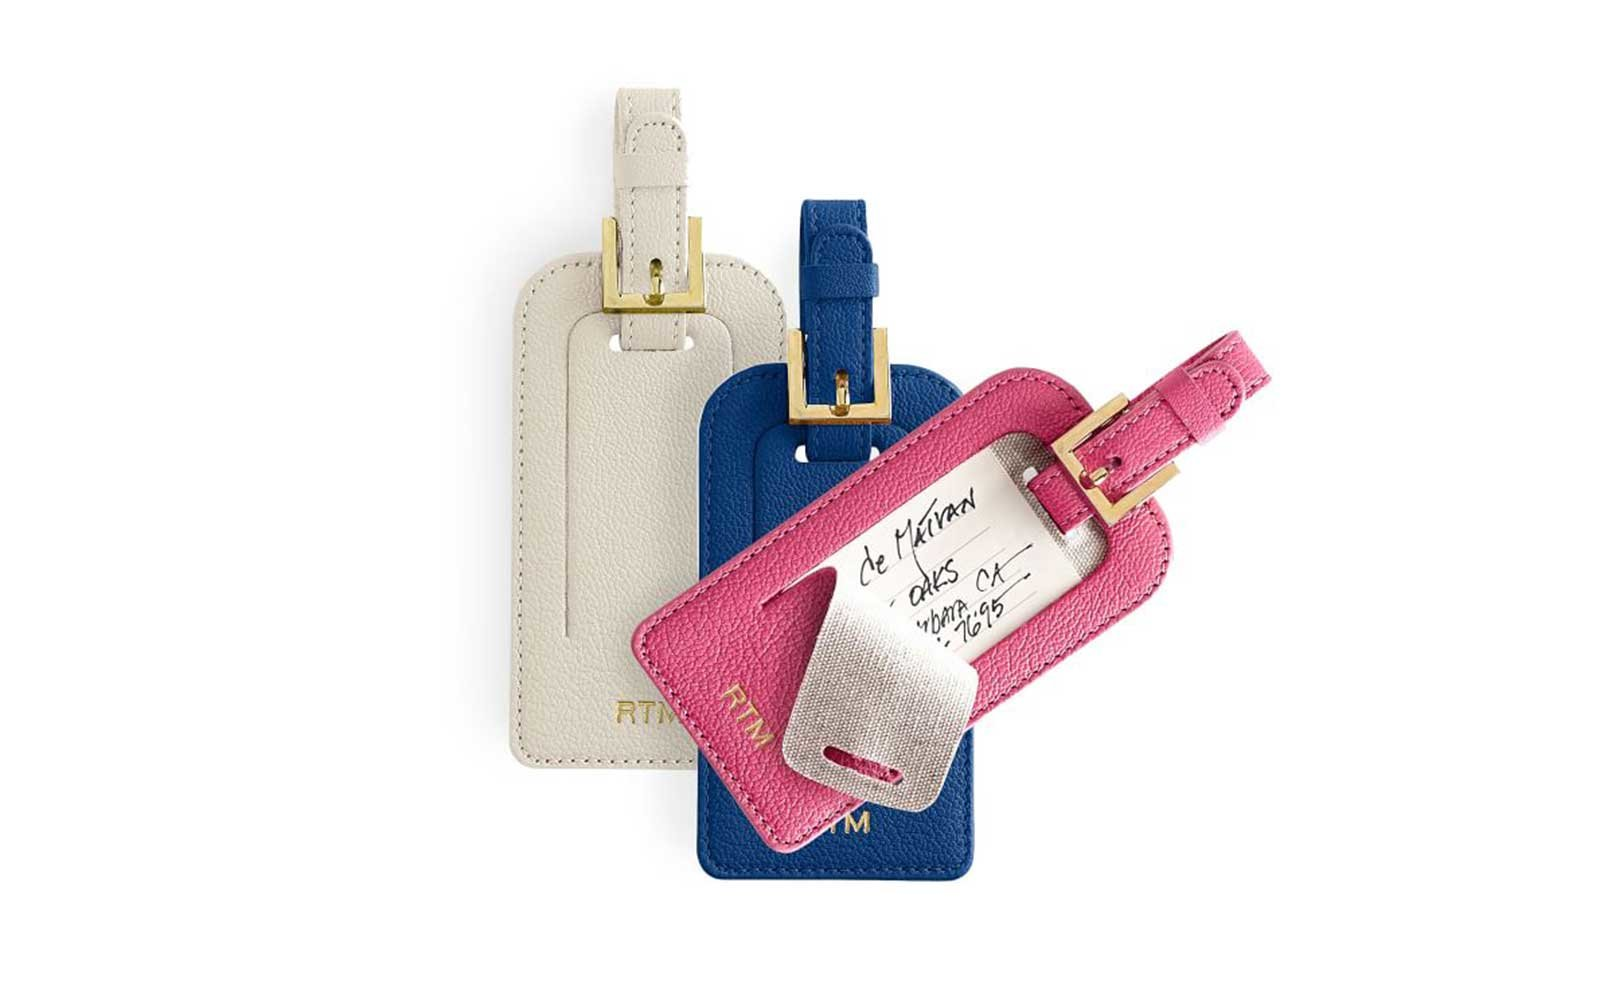 18 Luggage Tags Fancier Than the Paper One You Got for Free at the Airport | Travel + Leisure